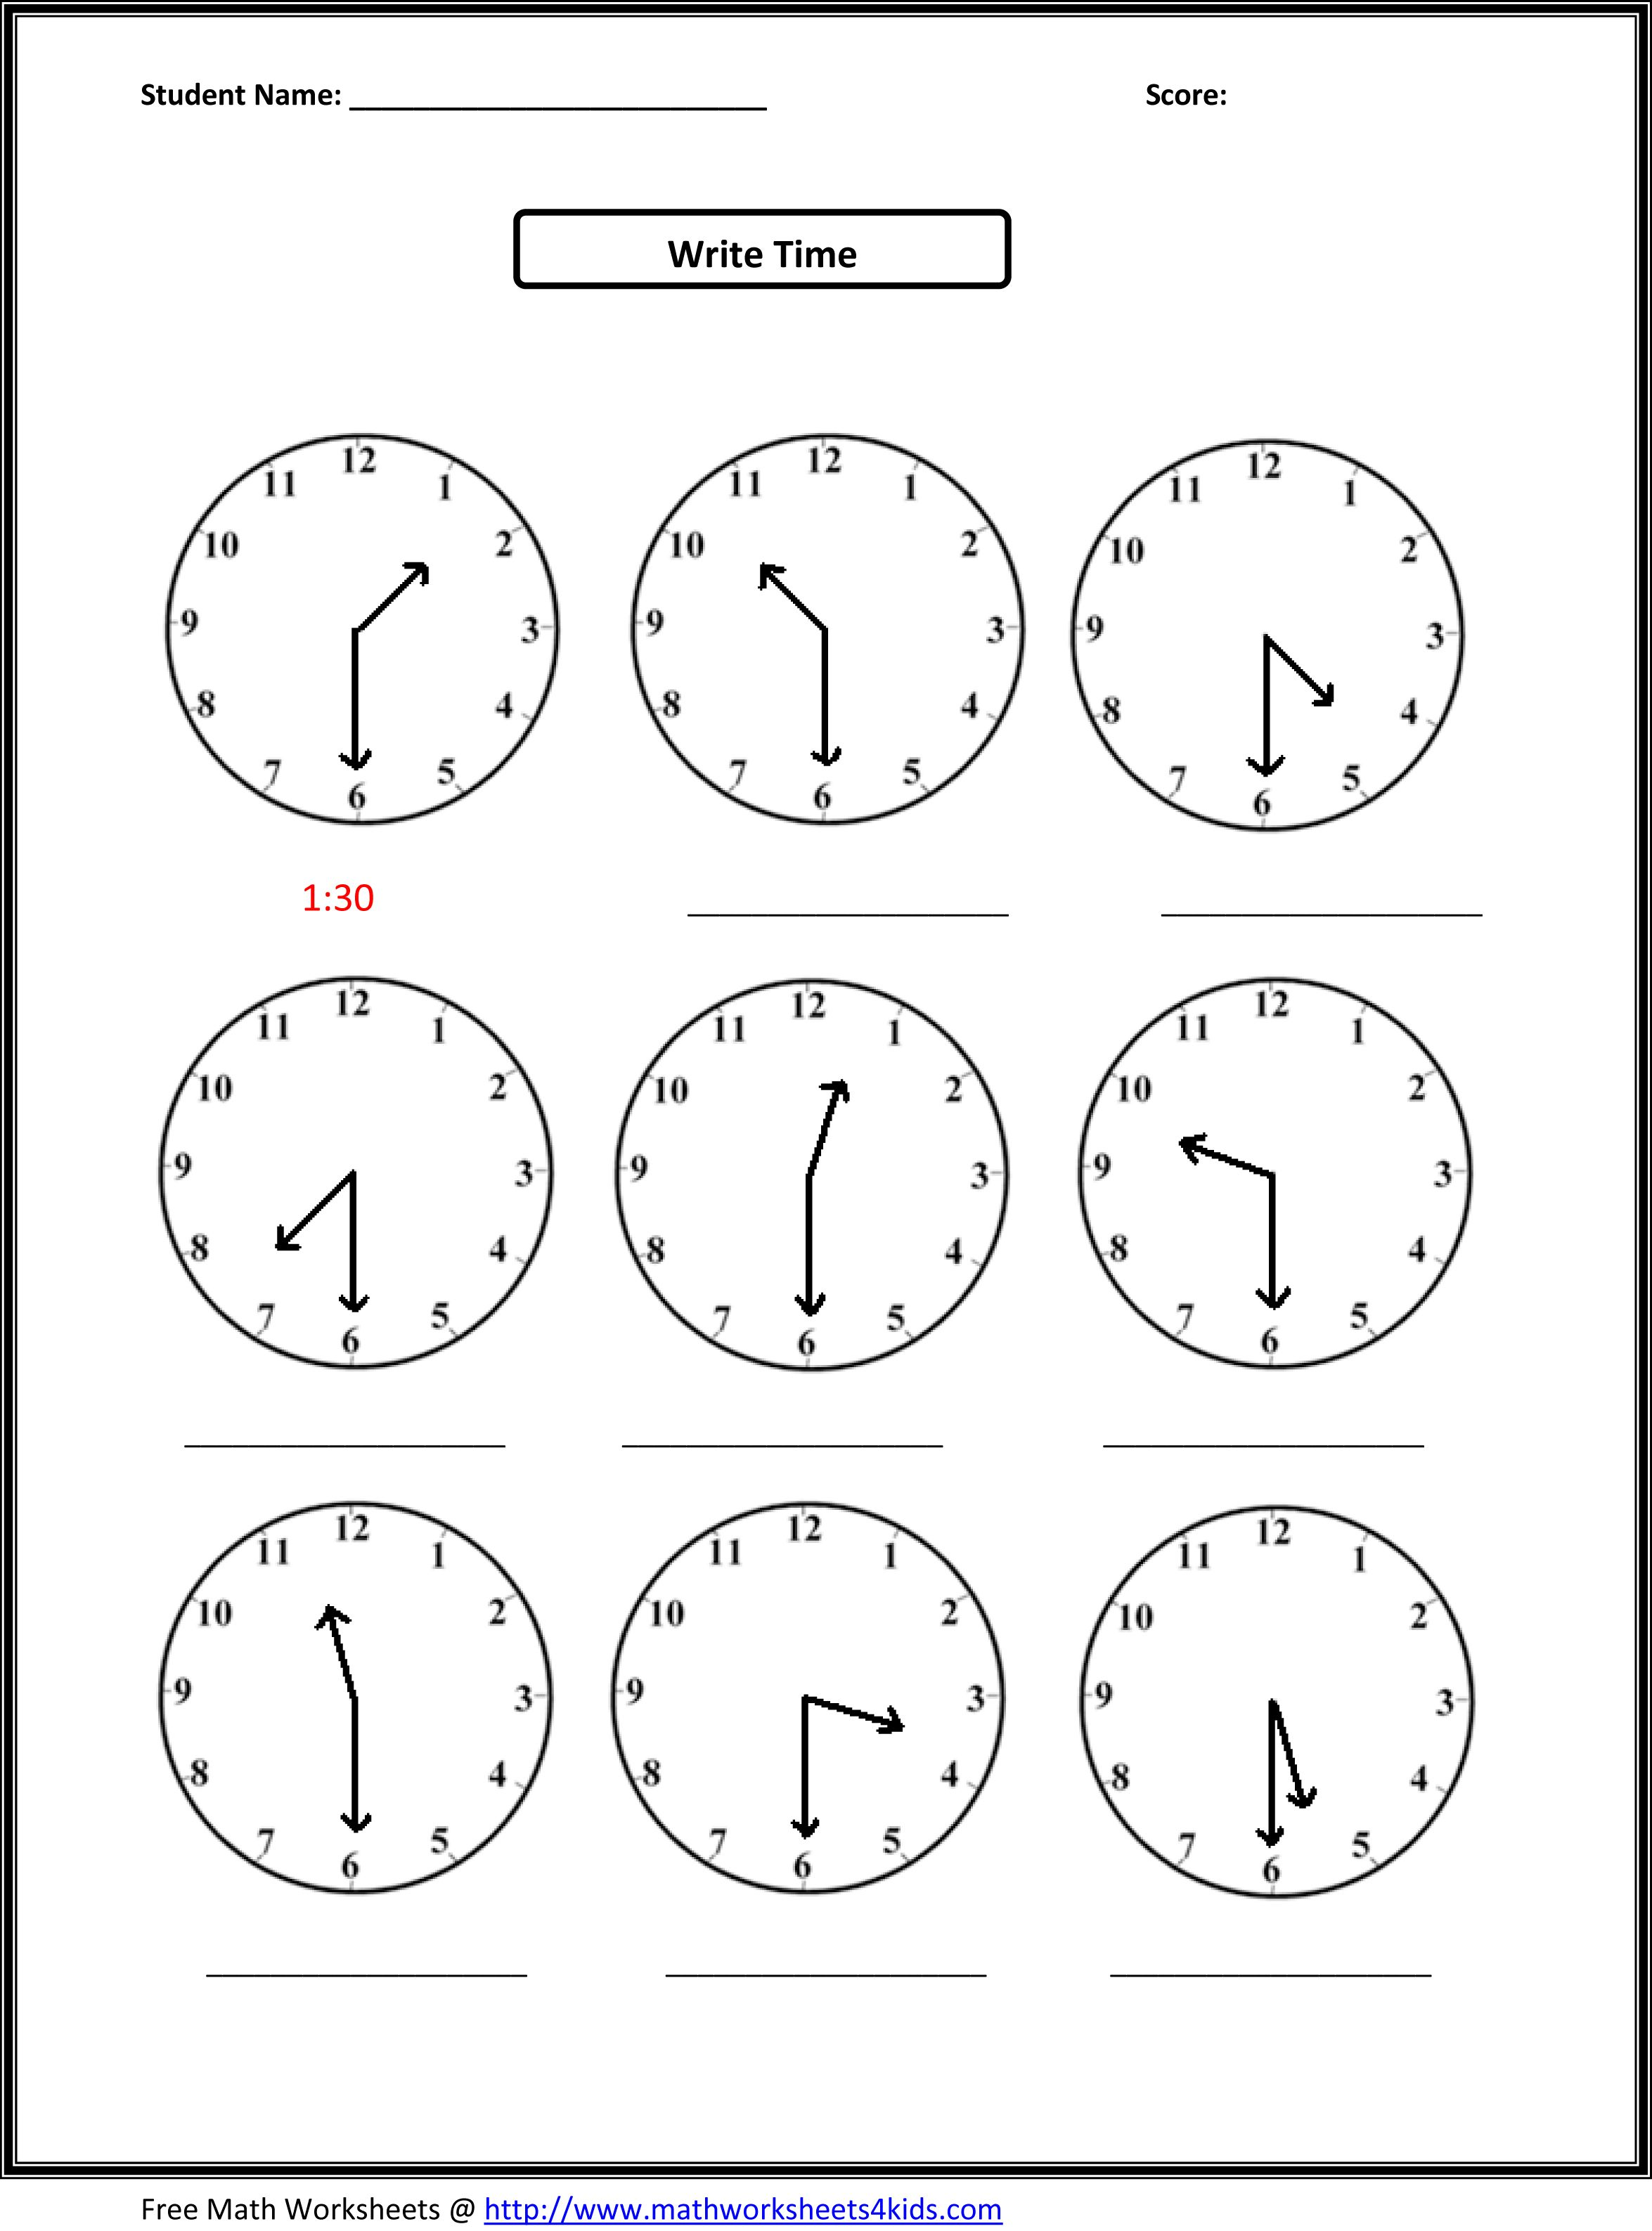 Proatmealus  Seductive Worksheet On Time For Grade   Reocurent With Entrancing Free Printable Telling Time Worksheets Nd Grade  Reocurent With Amusing Cbt Worksheets For Kids Also Comparing Fractions And Decimals Worksheet In Addition Wave Interactions Worksheet And Factoring Special Products Worksheet As Well As Prepositional Phrase Worksheet With Answers Additionally Wedding Day Timeline Worksheet From Reocurentcom With Proatmealus  Entrancing Worksheet On Time For Grade   Reocurent With Amusing Free Printable Telling Time Worksheets Nd Grade  Reocurent And Seductive Cbt Worksheets For Kids Also Comparing Fractions And Decimals Worksheet In Addition Wave Interactions Worksheet From Reocurentcom